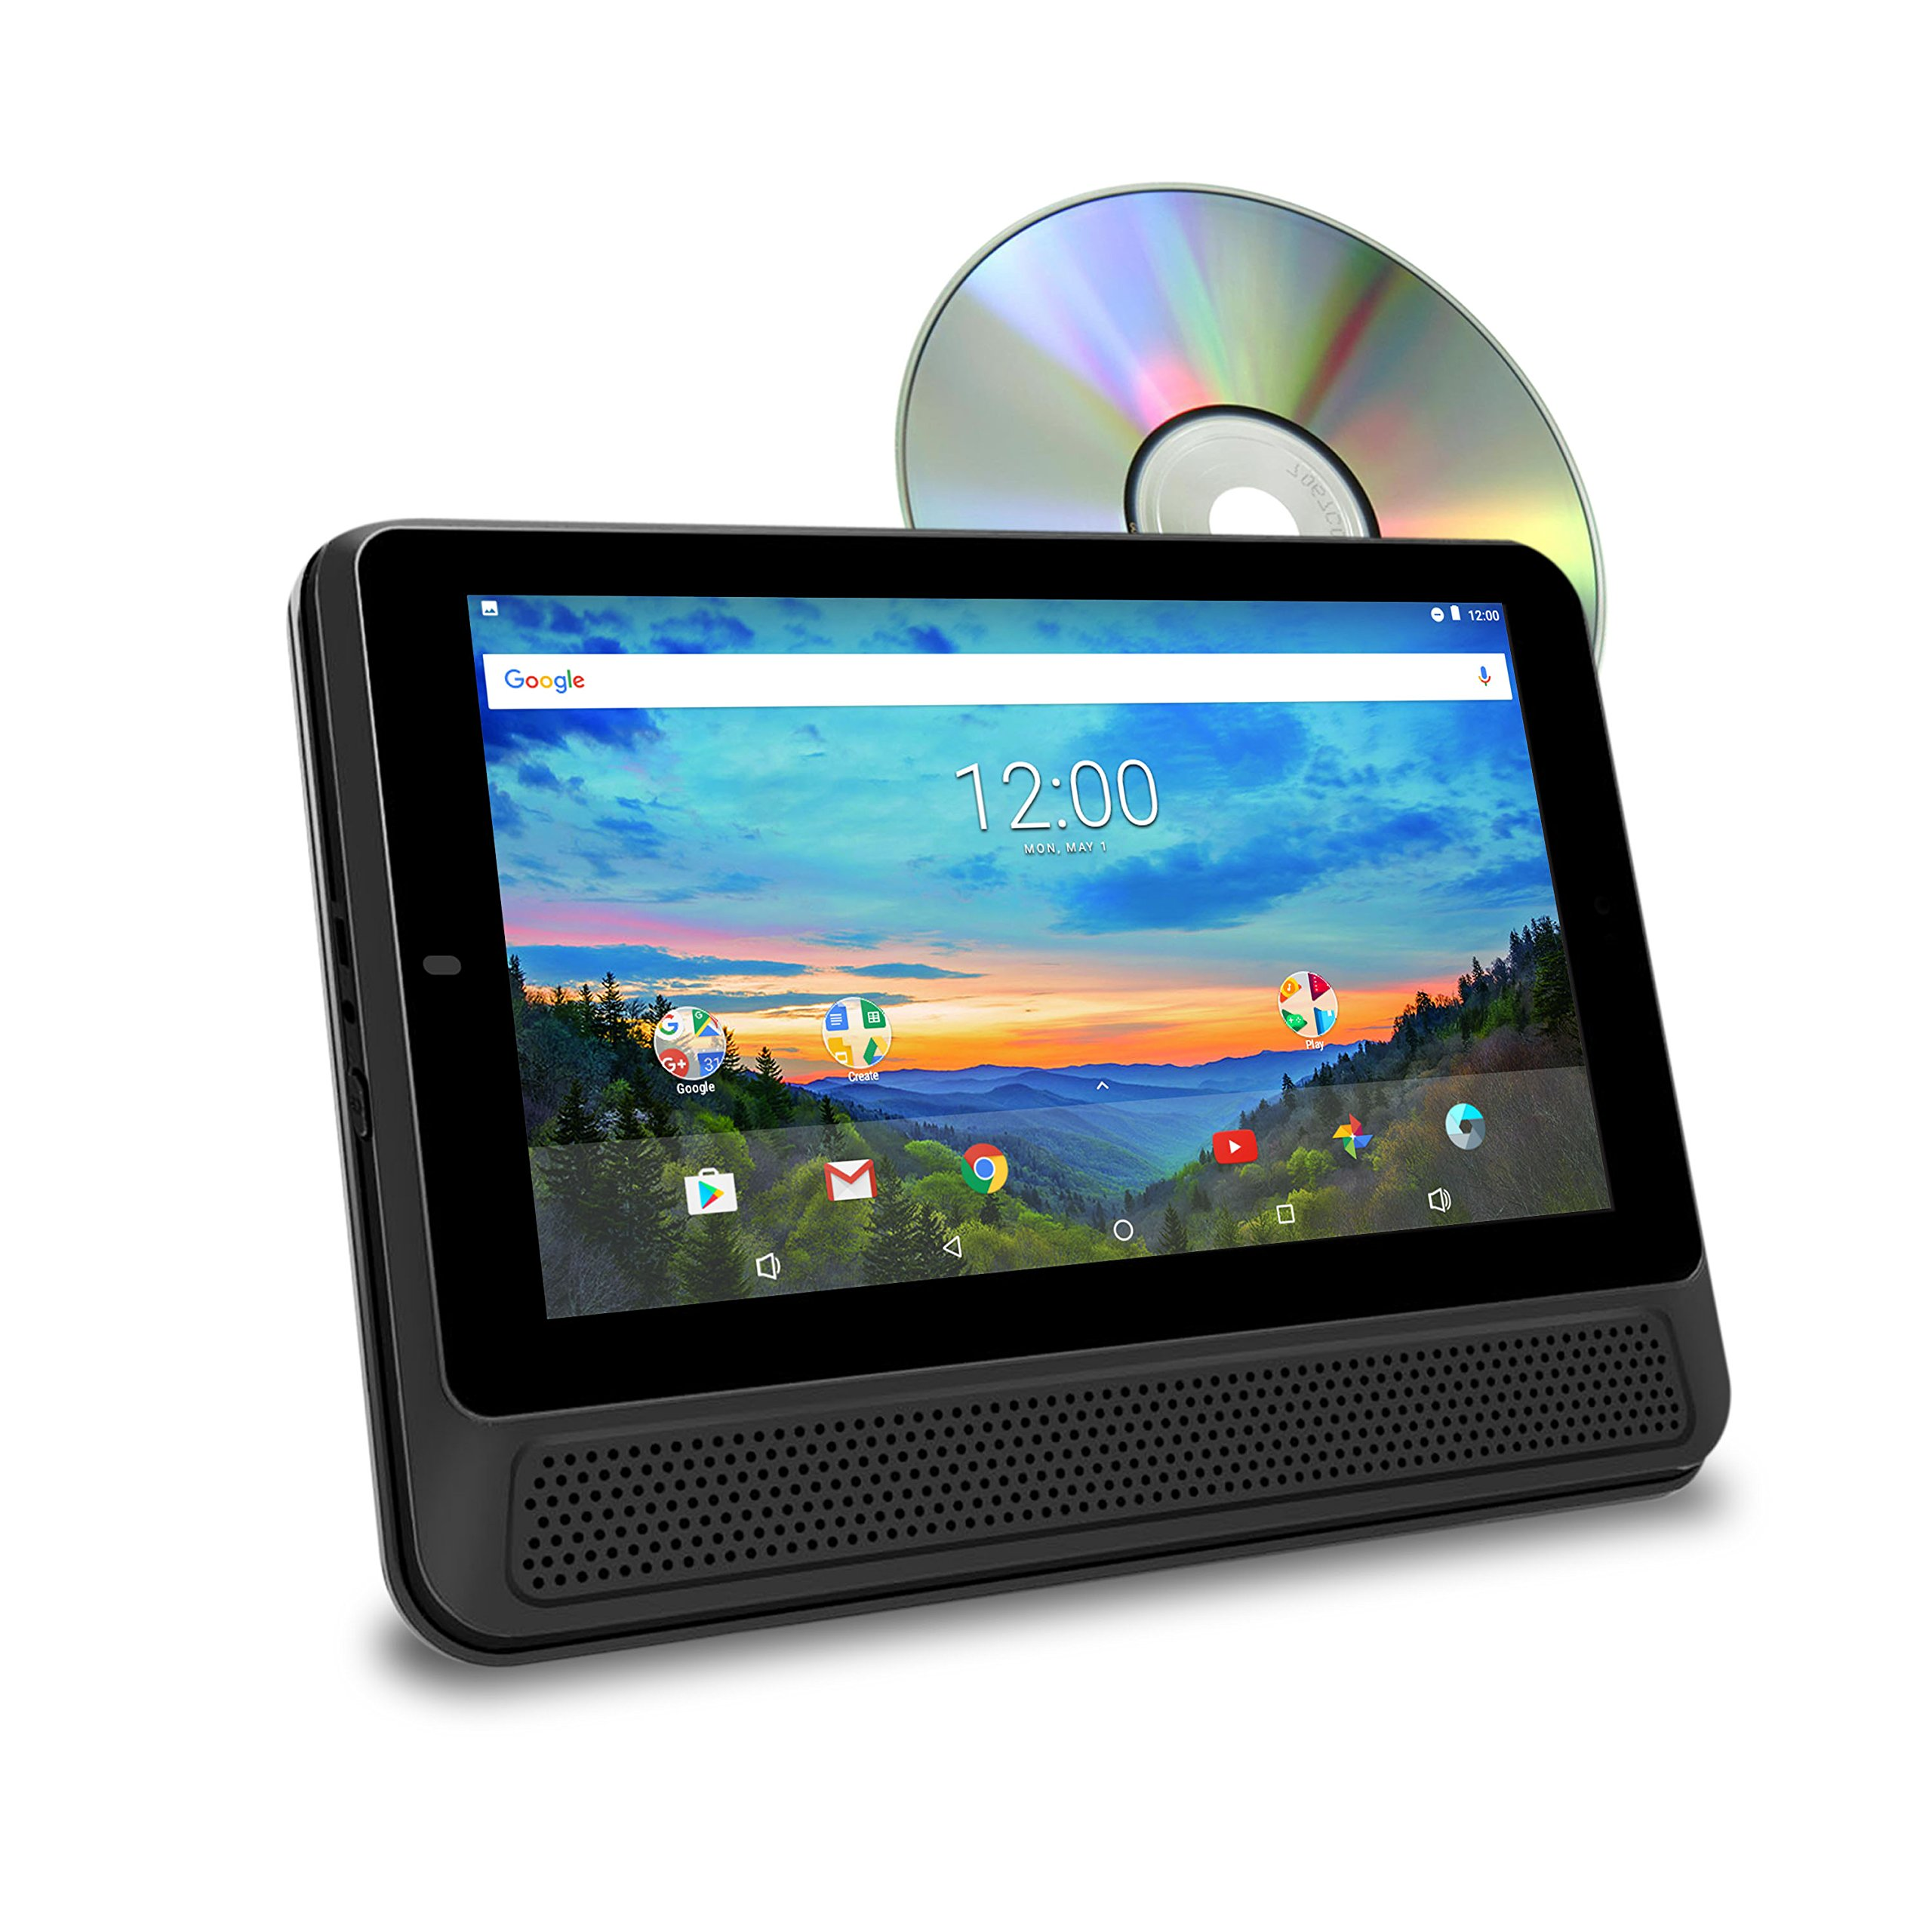 RCA 10'' Touchscreen Tablet PC/DVD Combo Featuring Android 6.0 (Marshmallow)